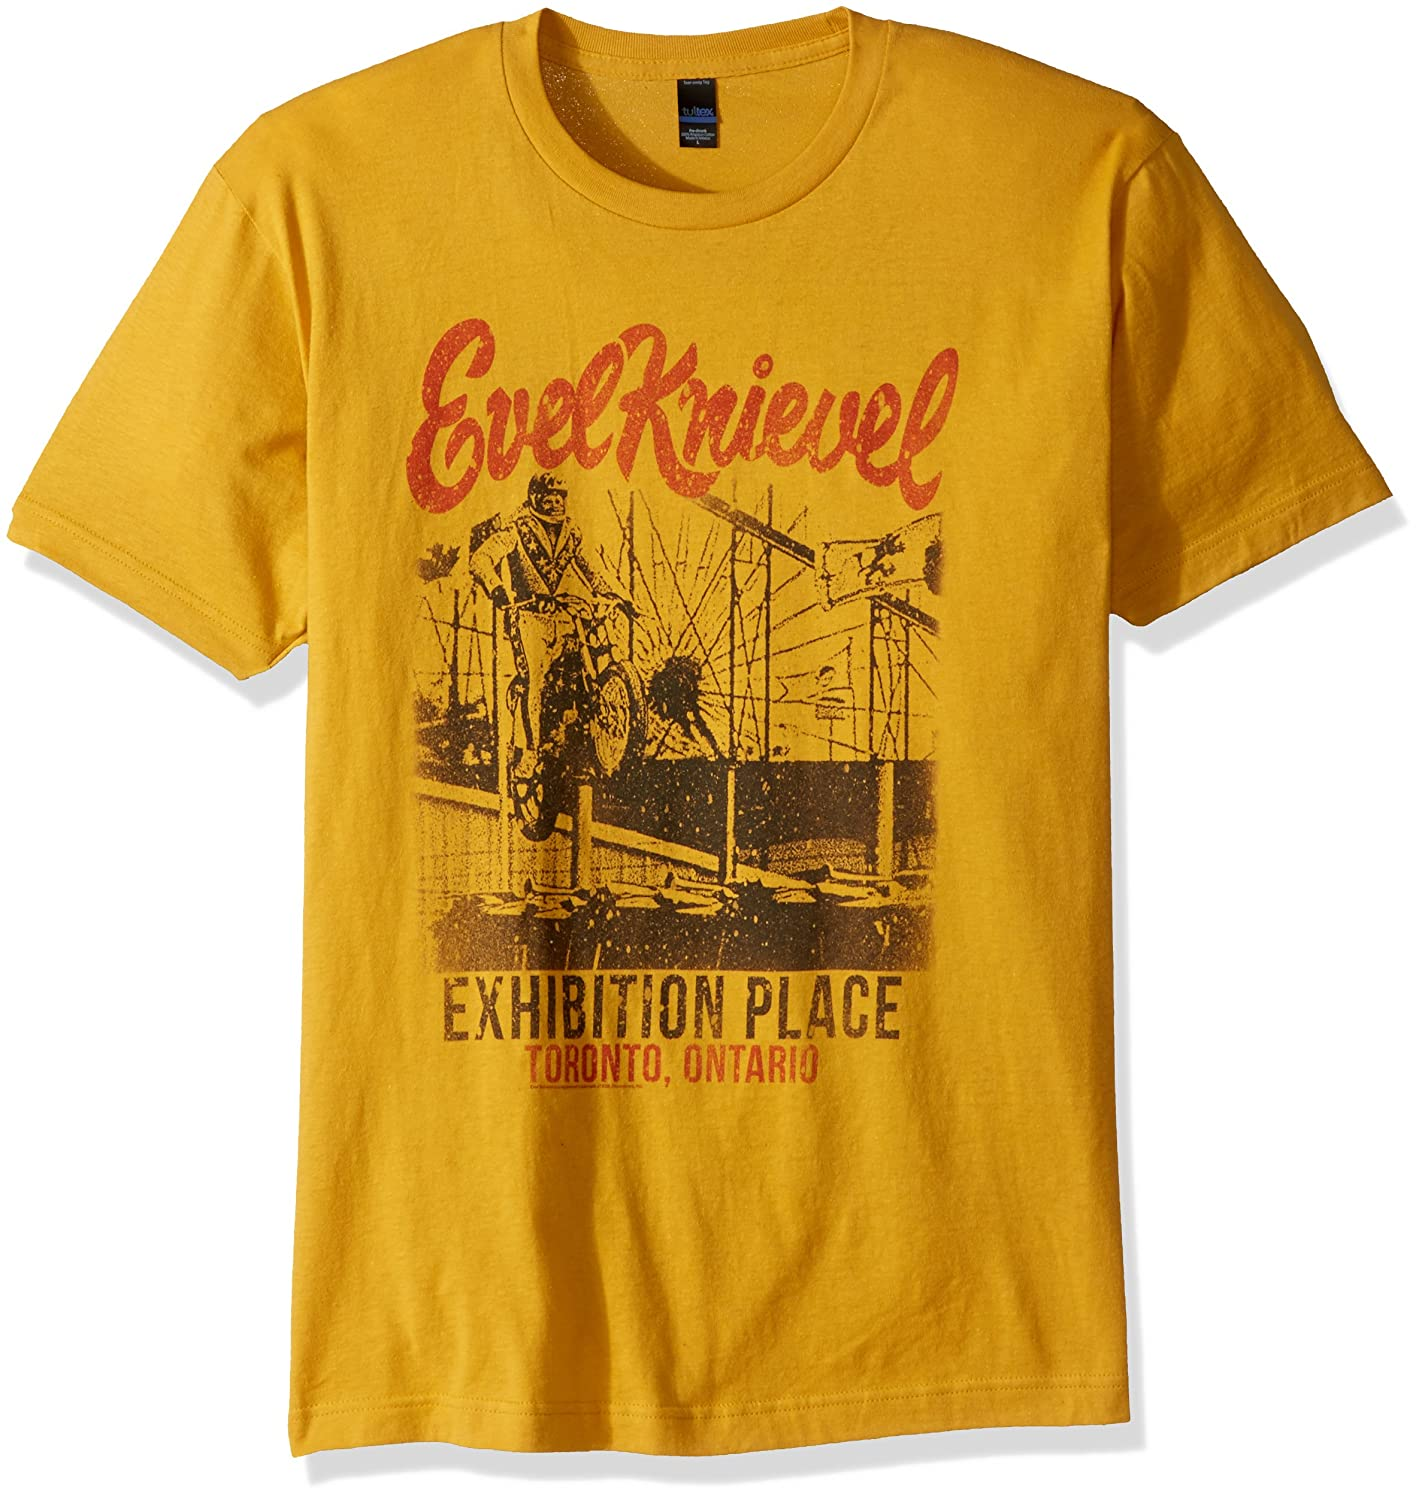 Evel Knievel American Iconic Daredevil Exhibition Place Toronto Adult T-Shirt American Classics EK5126